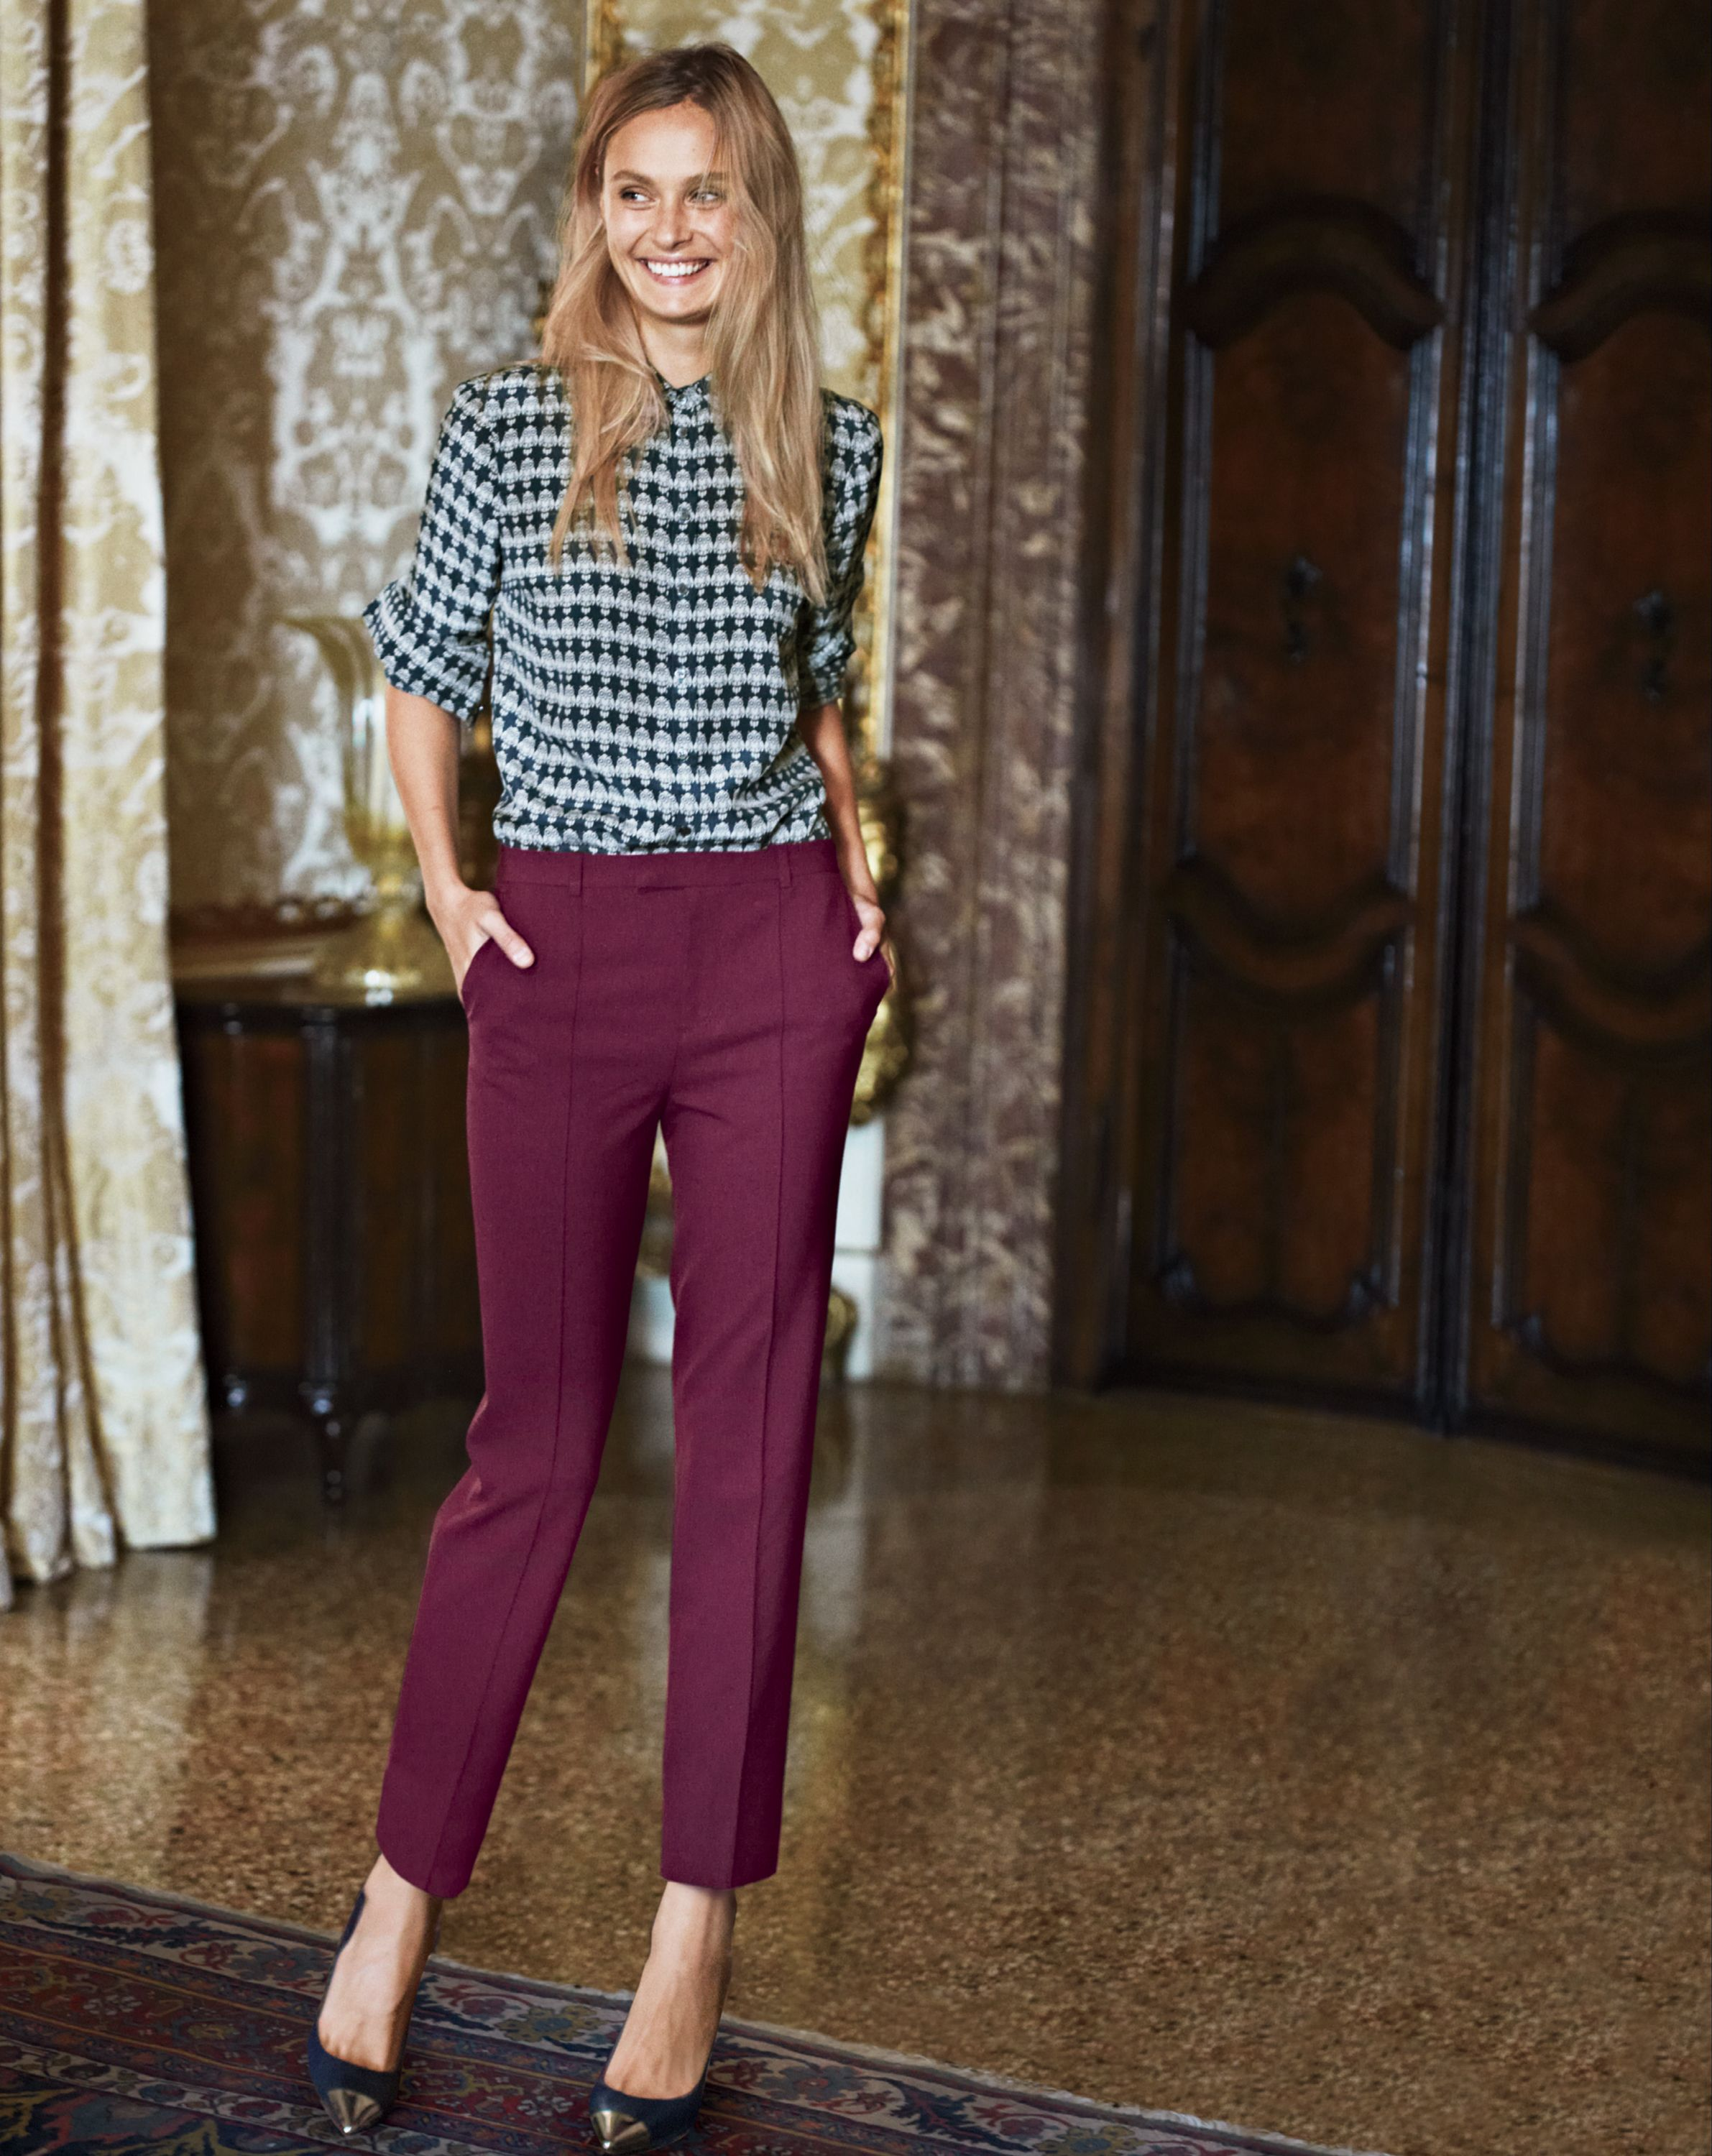 815f22e8 Two trends combined in one work outfit: burgundy & print #workwear  #officefashion J.Crew Silk boy blouse in owl print.